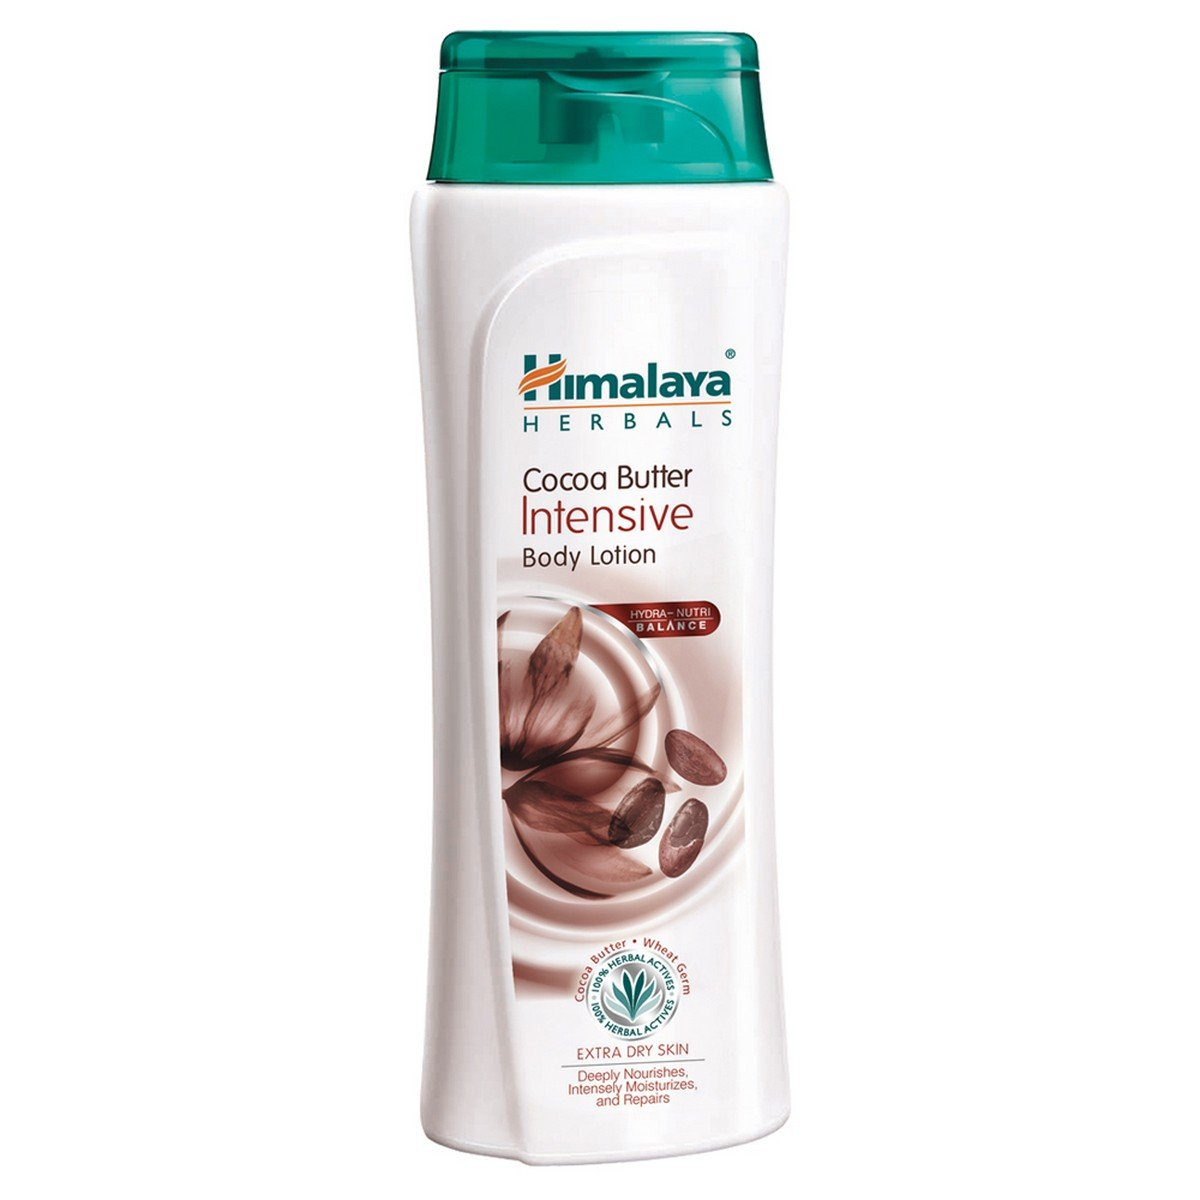 Himalaya Herbals Cocoa Butter Intensive Body Lotion-Good for Body care-By drdeep41